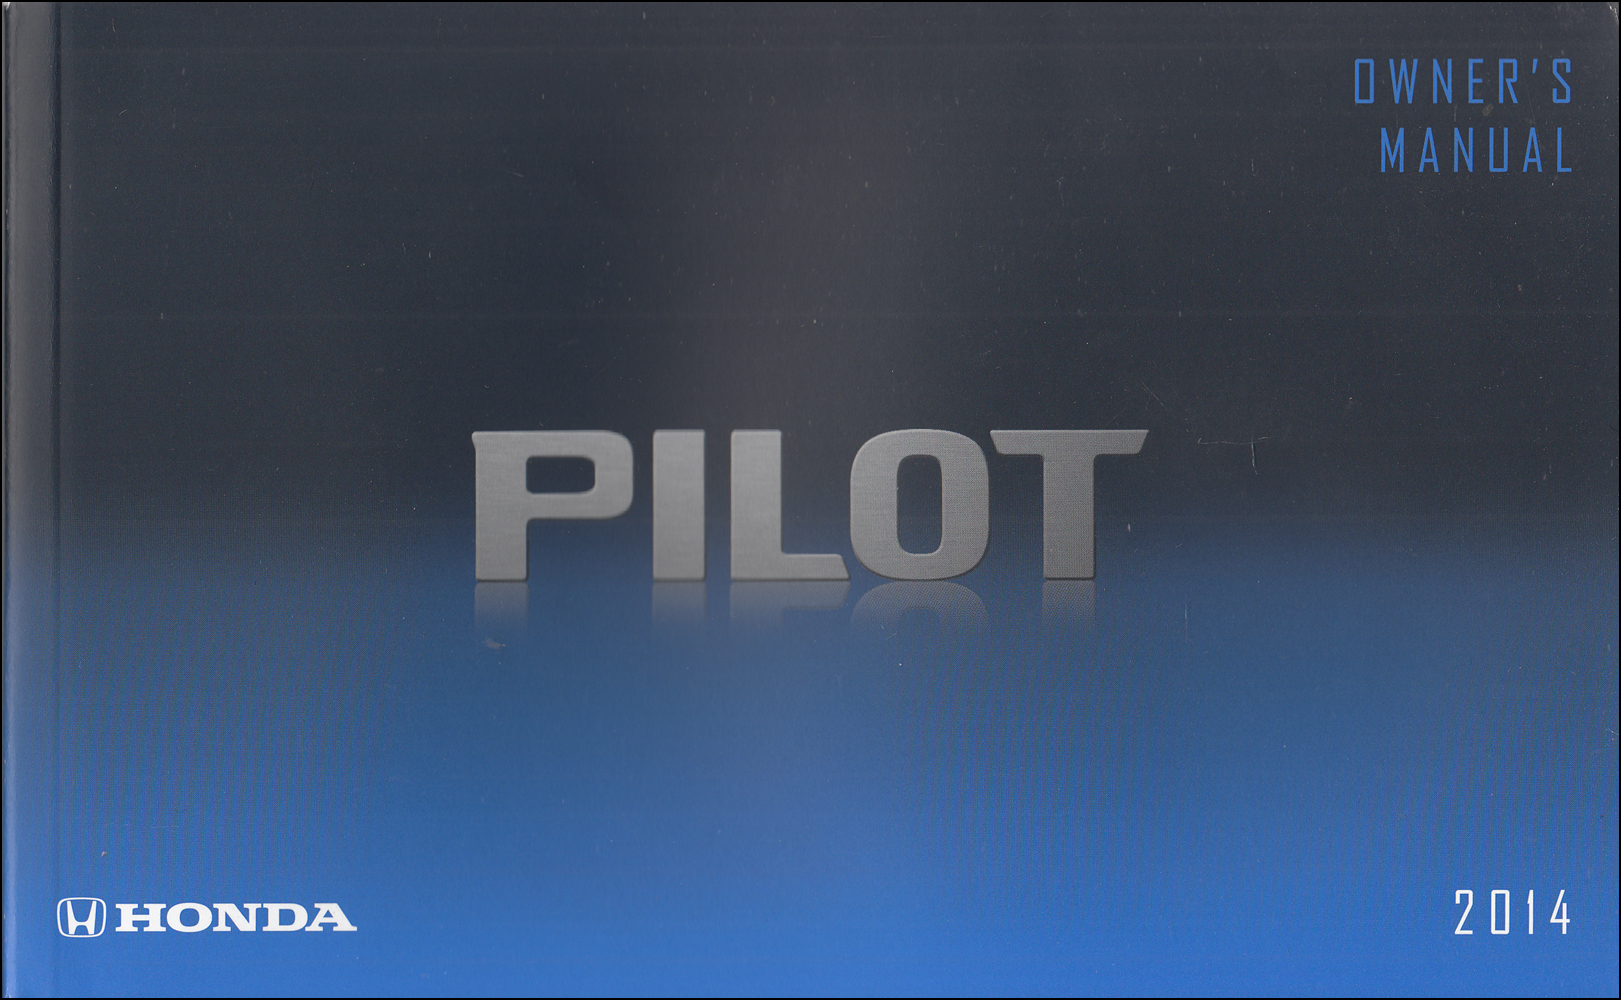 2014 Honda Pilot Owner's Manual Original